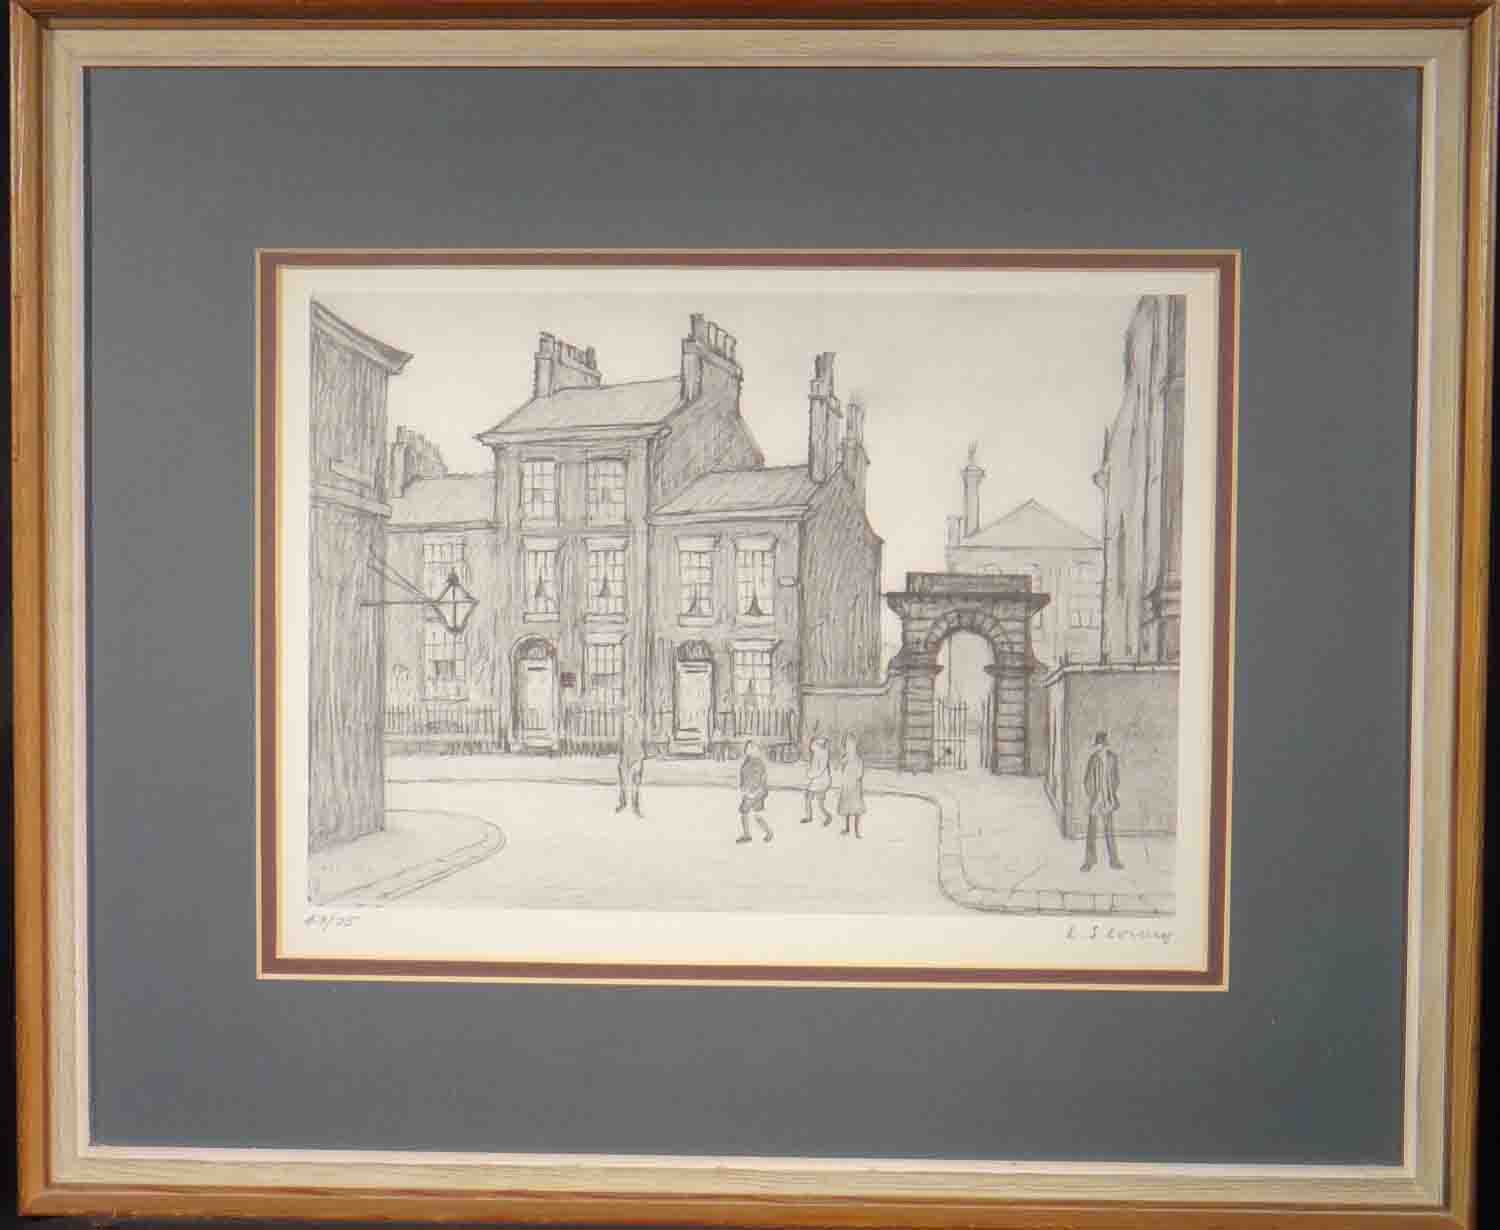 lowry, County court, Salford, signed print lslowry